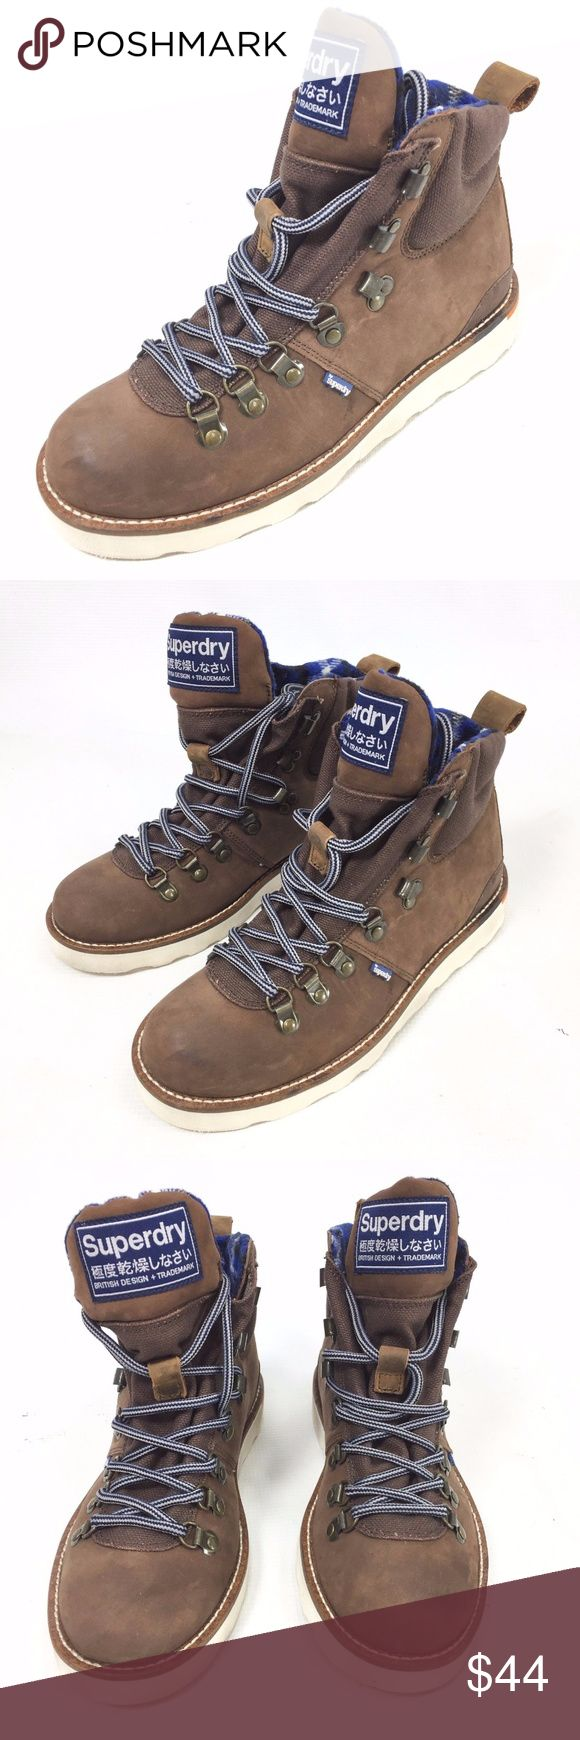 SUPERDRY Suede Brown Hiking Boots Size 6 NEW SUPERDRY Men's Suede Brown Hiking Boots Size 6 Lace Up NEW   Store display; Some marks on the side of the sole and a spot on the left toebox; See Photos for details  The item will be shipped either the same or next day  Send me a message if you have any questions Superdry Shoes Boots